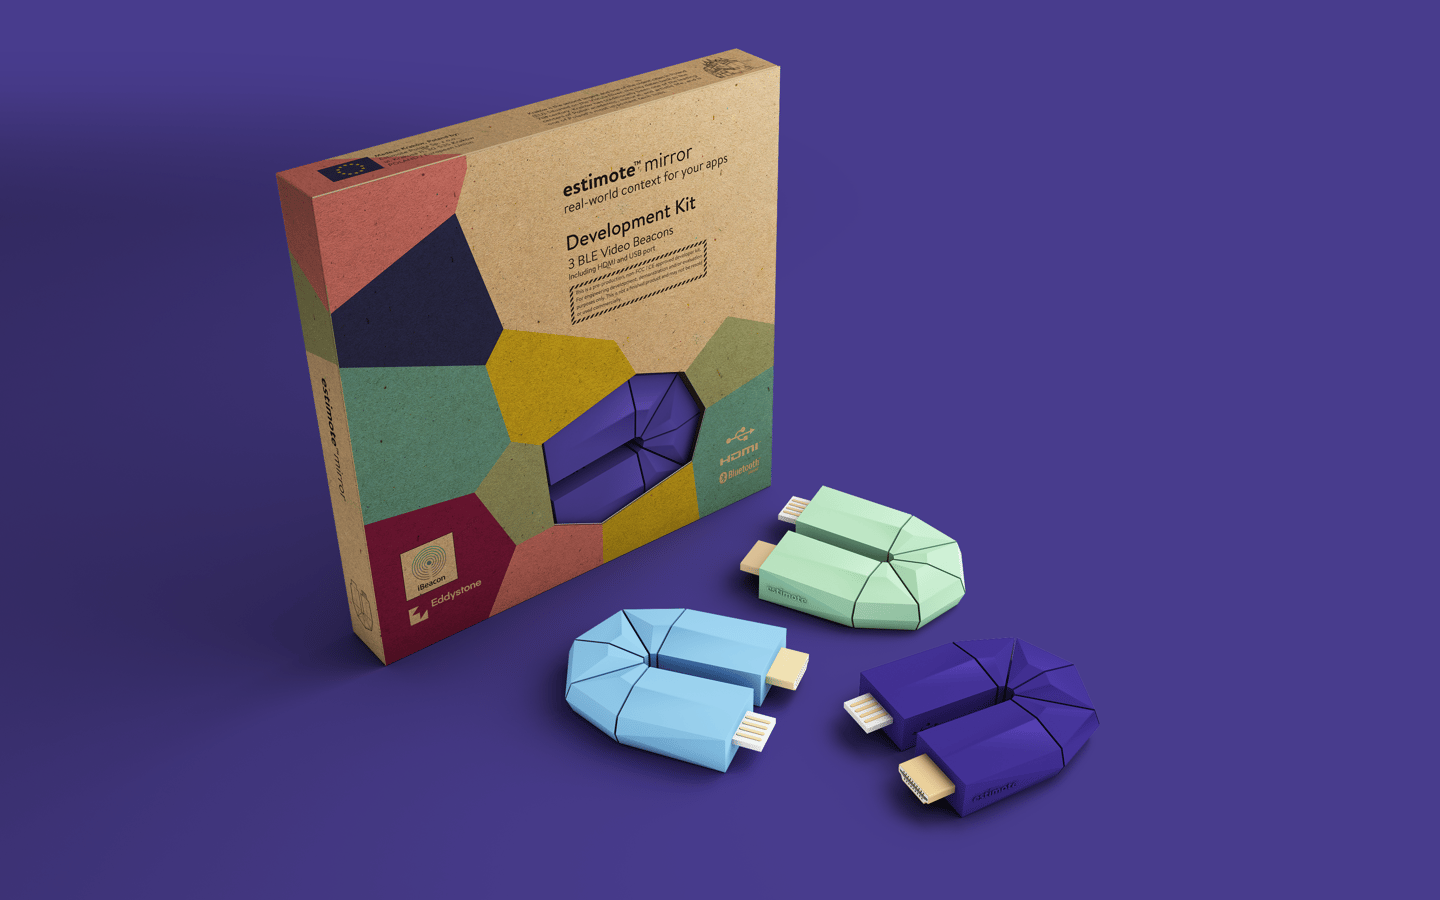 The Estimote Mirror developer kit will ship in Northern Hemisphere winter